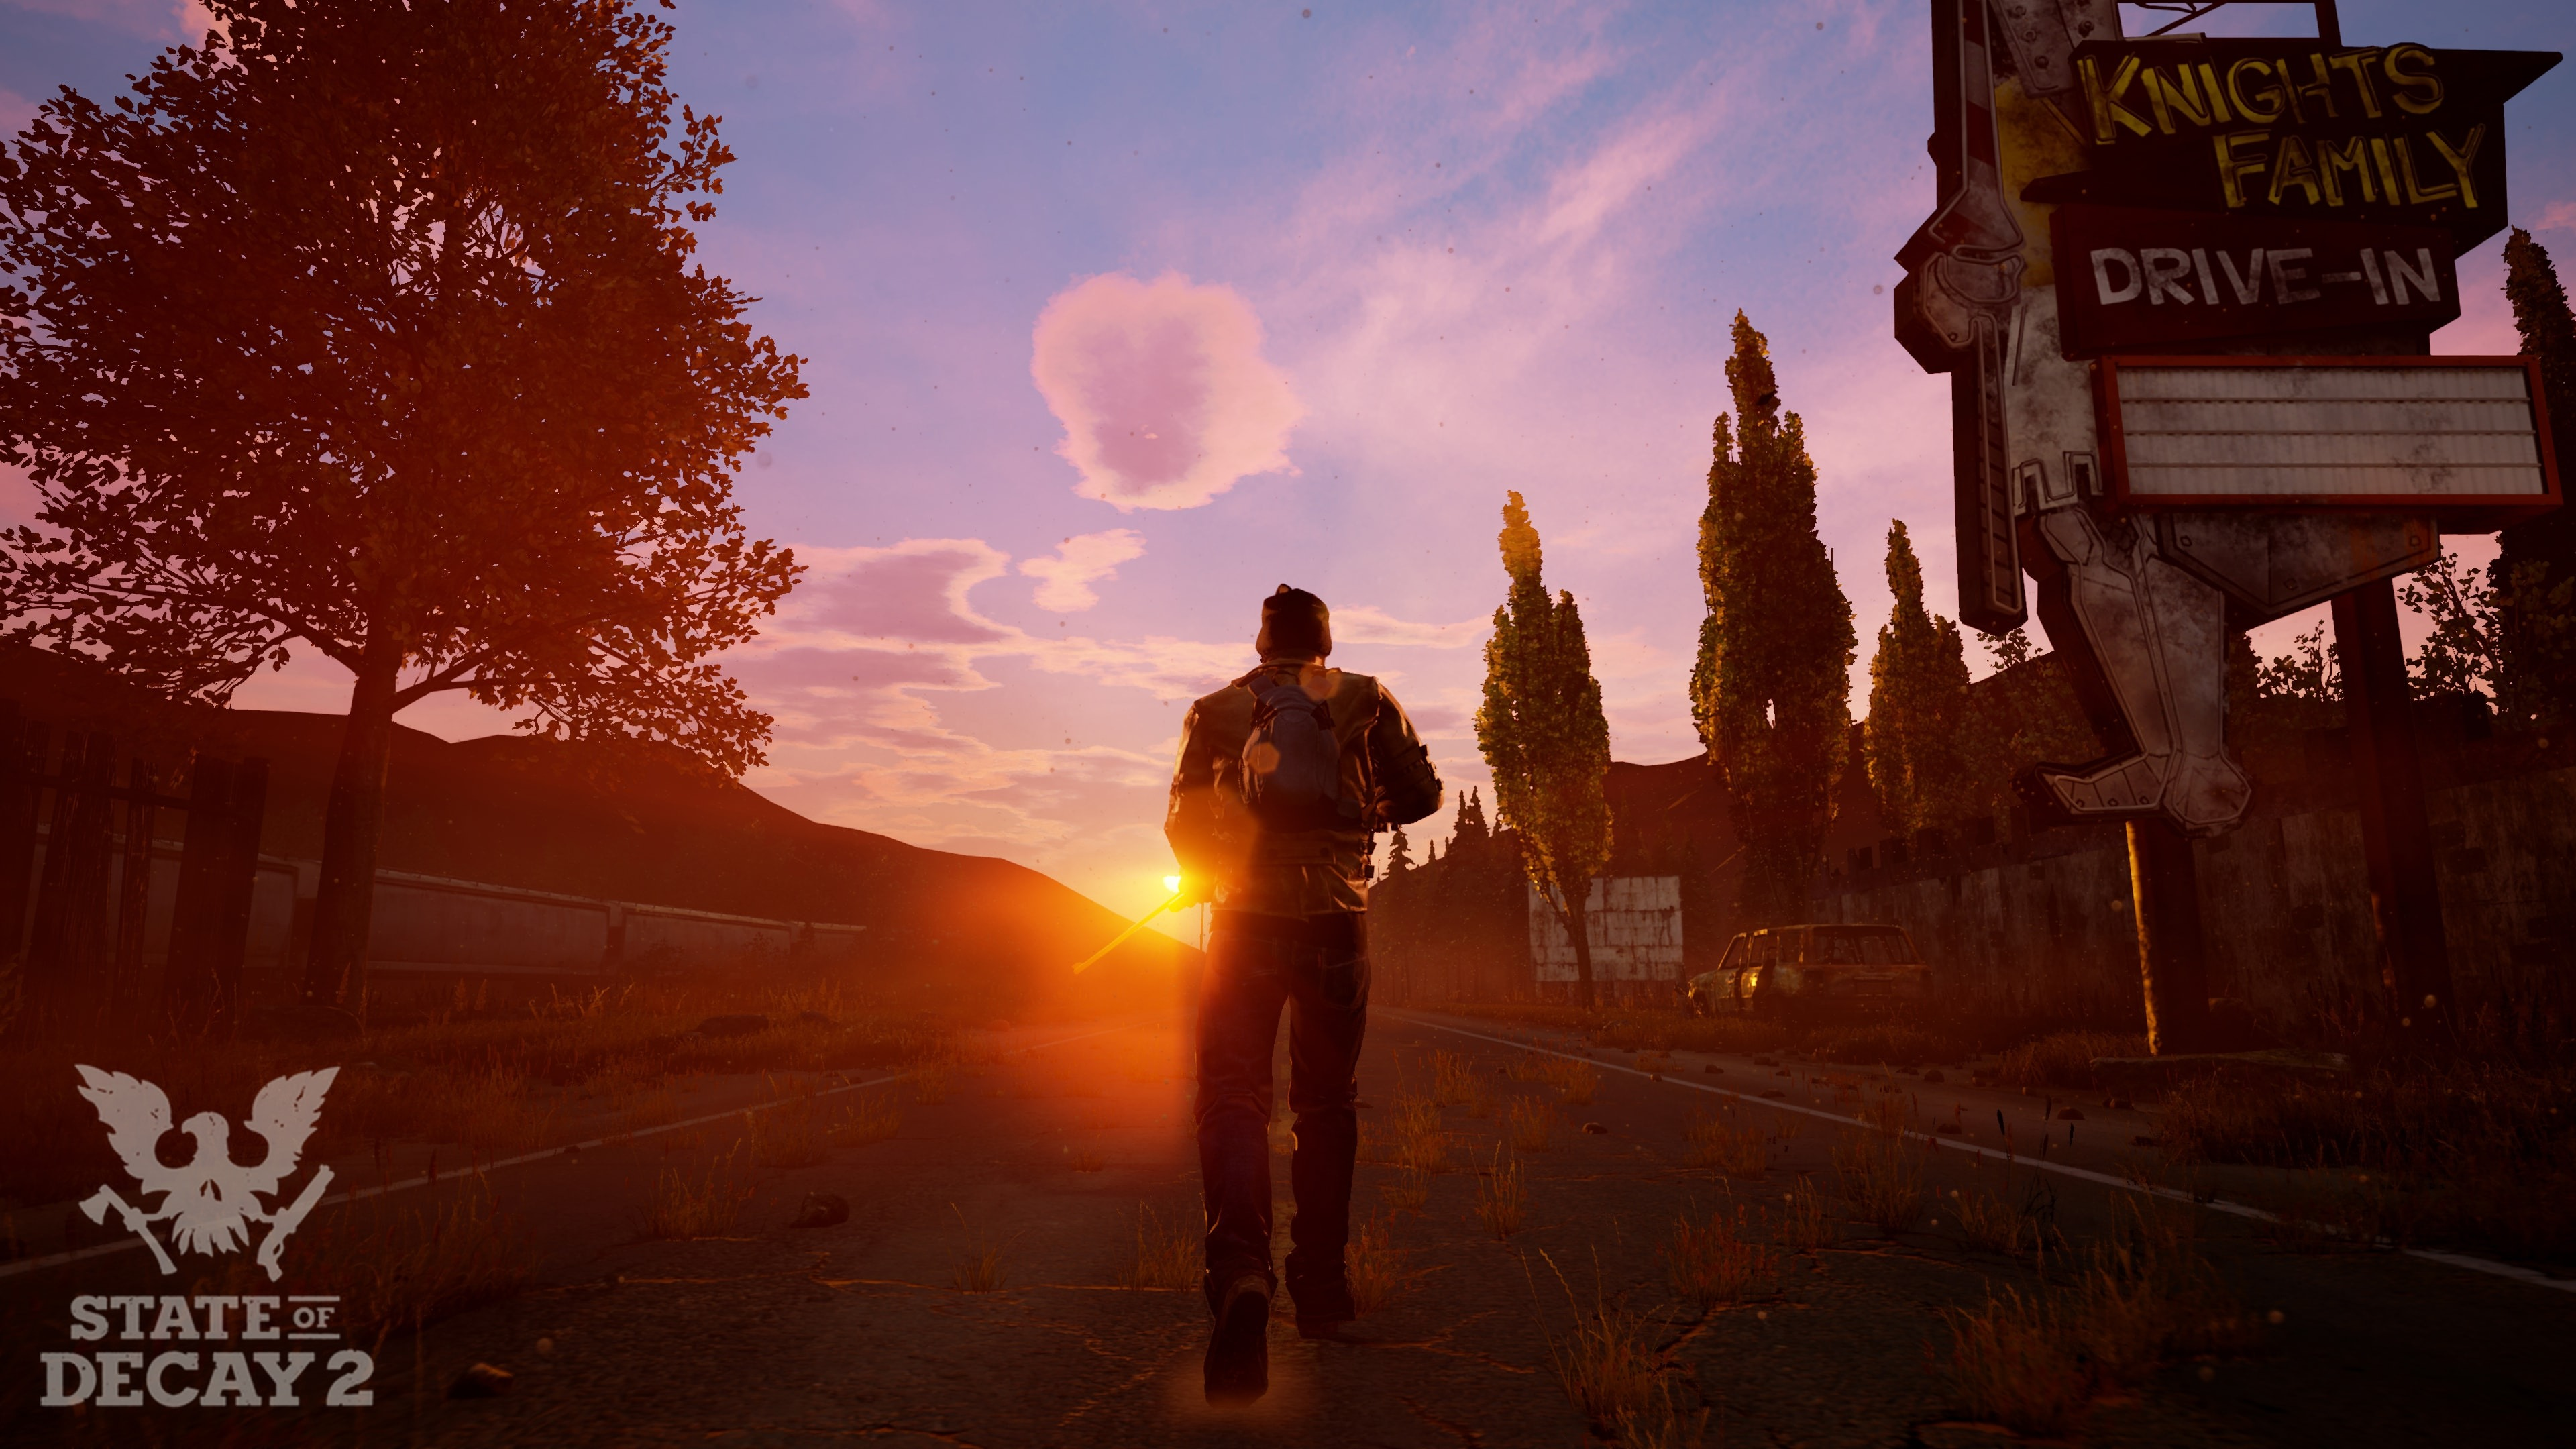 State of Decay 2: 16 Advanced Tips To Help You Beat The